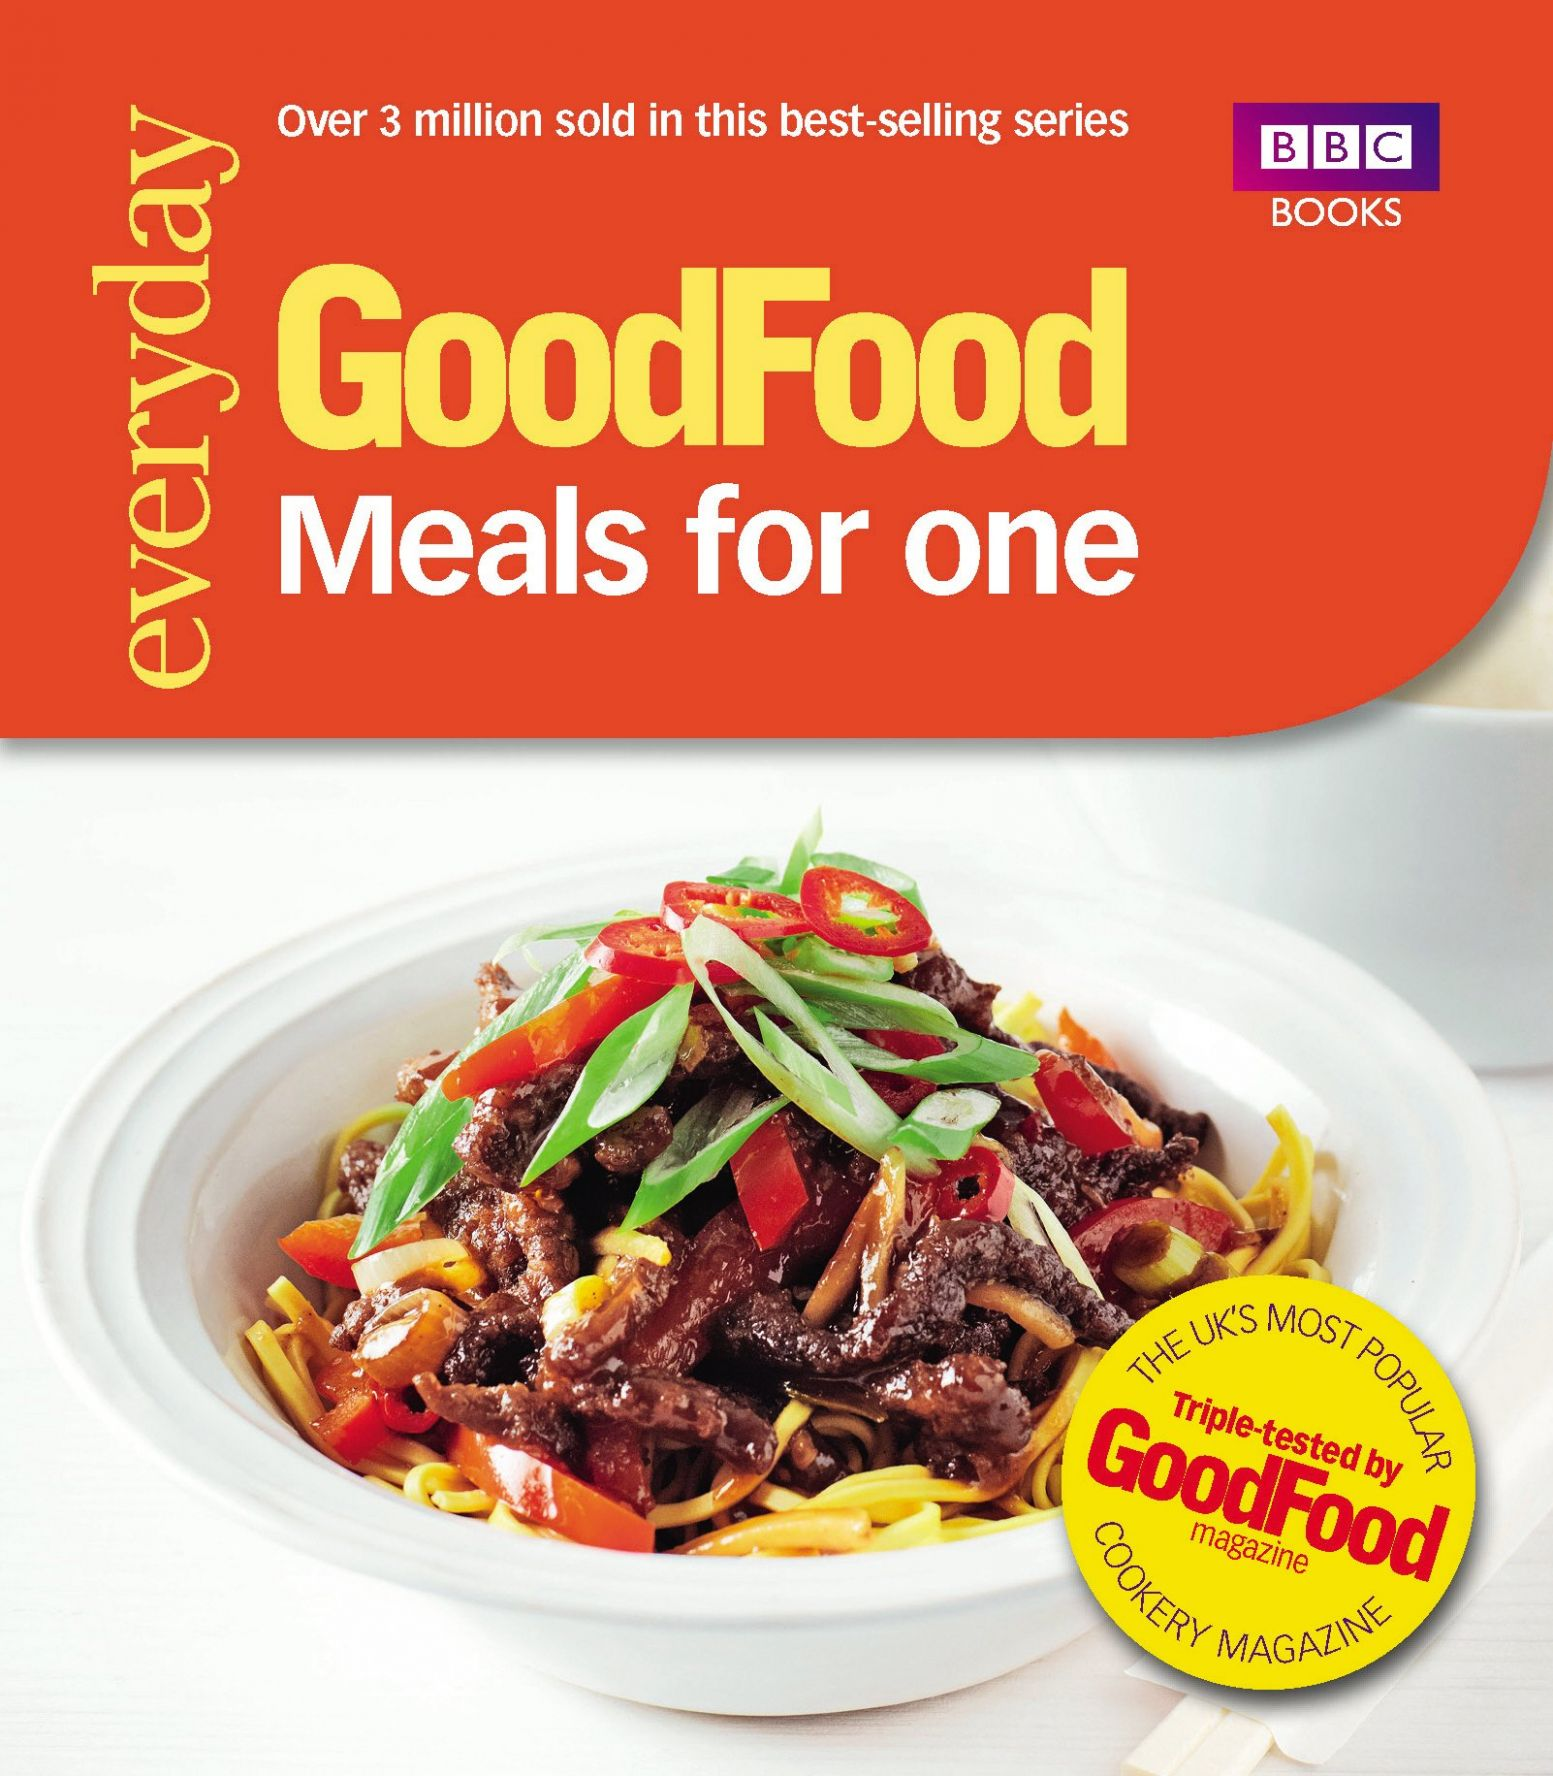 Good Food: Meals for One: Triple-tested recipes: Amazon.de: Good ..